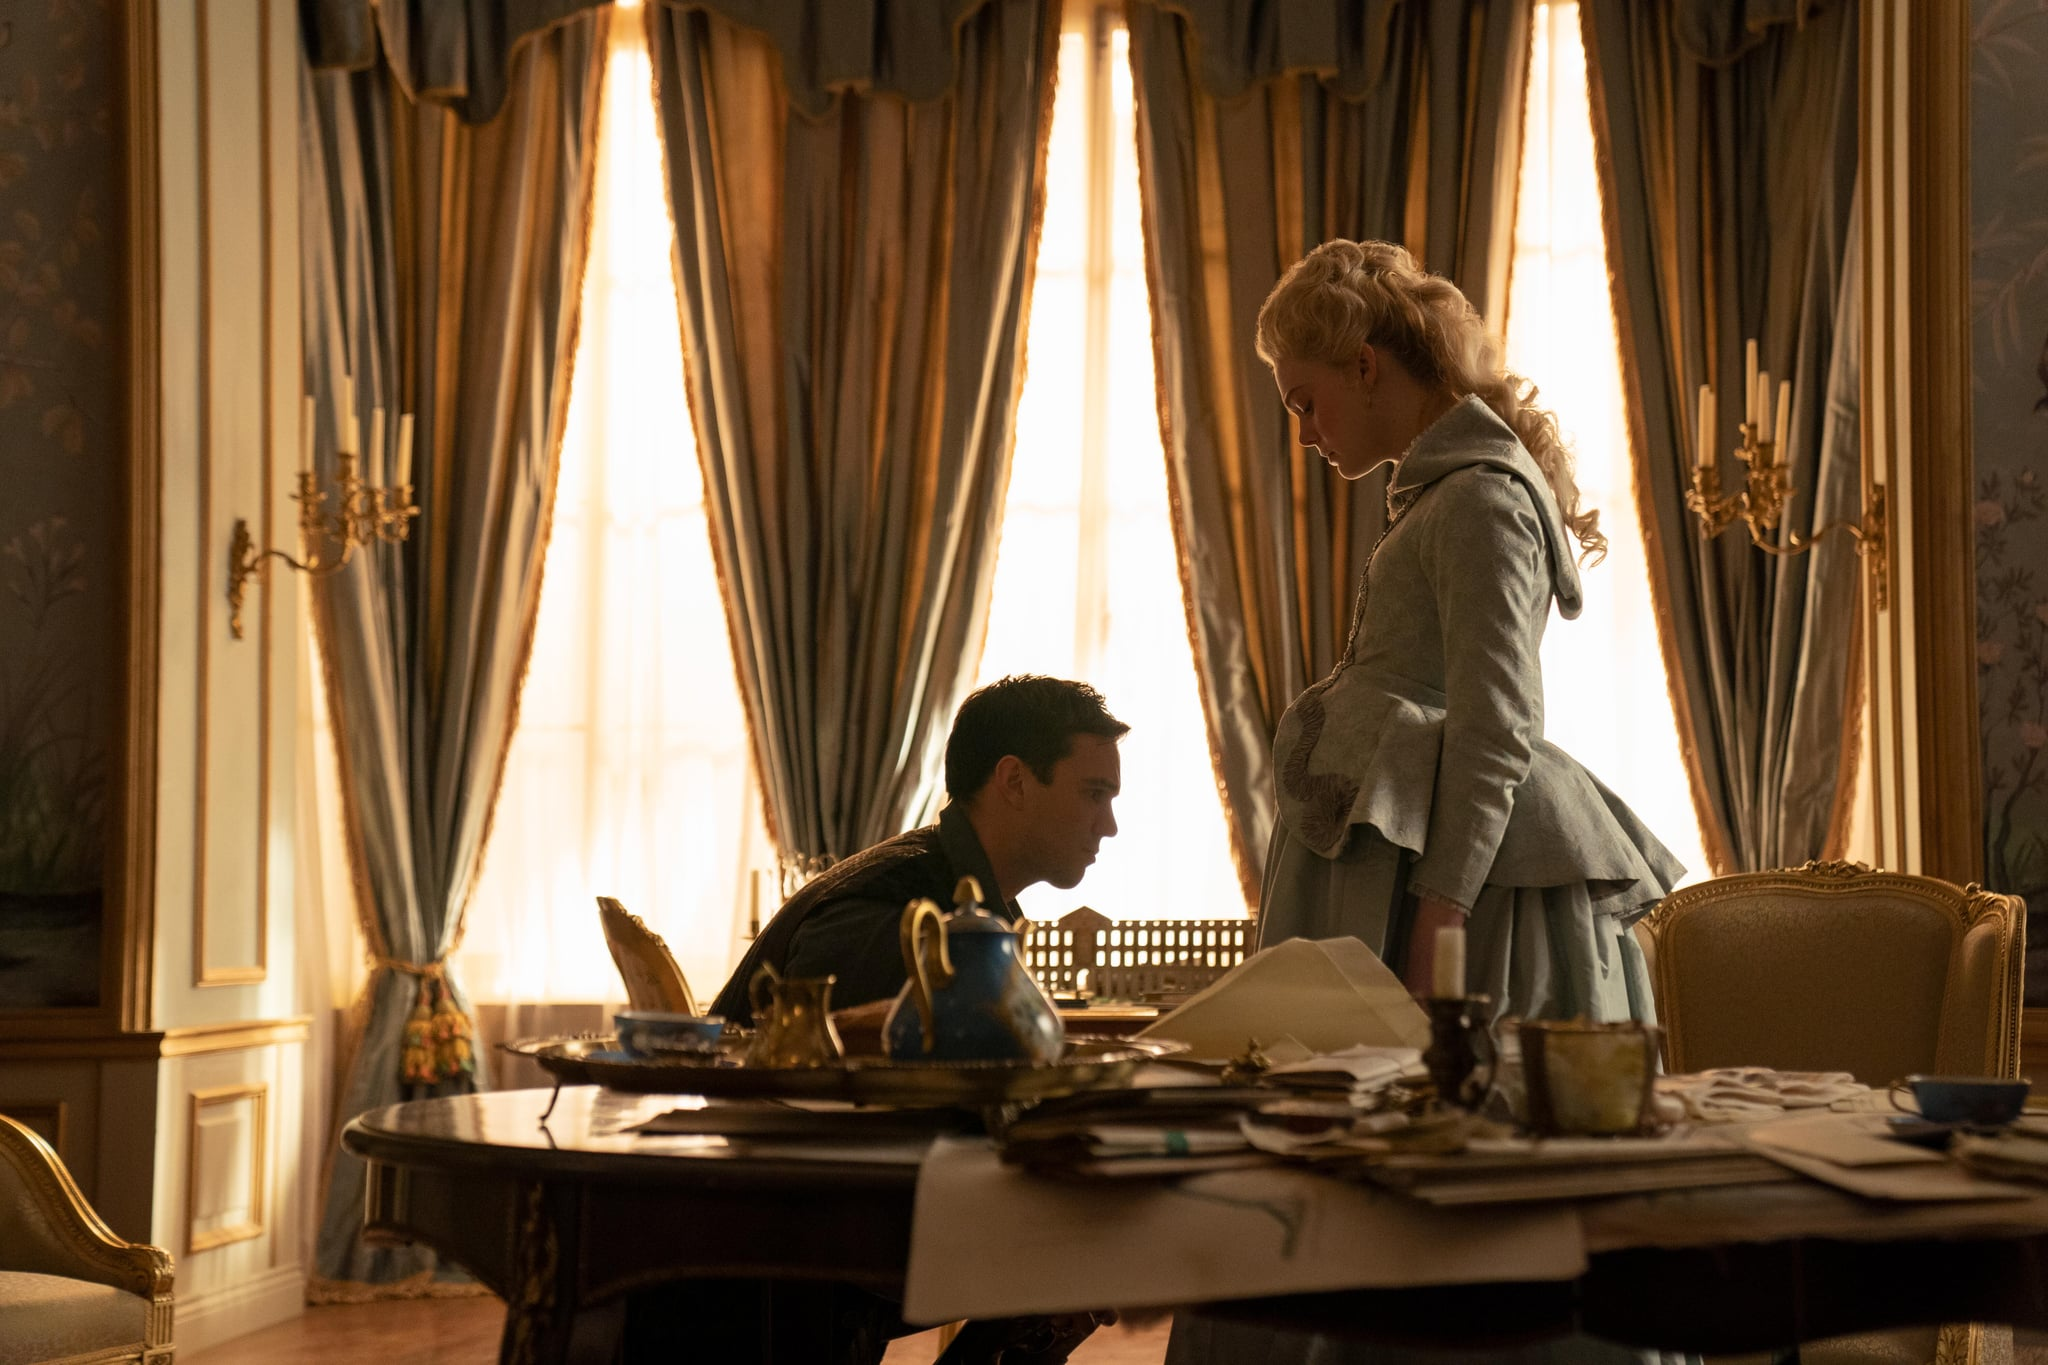 The Great - Episode 201 - Heads It's Me - 4 months after she launched a coup against her husband, a pregnant Catherine has won her war against Peter.  The fact that he loved Catherine so much and their unborn child did nothing to prevent him from taking his throne.  Peter (Nicholas Hoult) and Catherine (Elle Fanning), are shown.  (Photo by: Gareth Gatrell / Hulu)